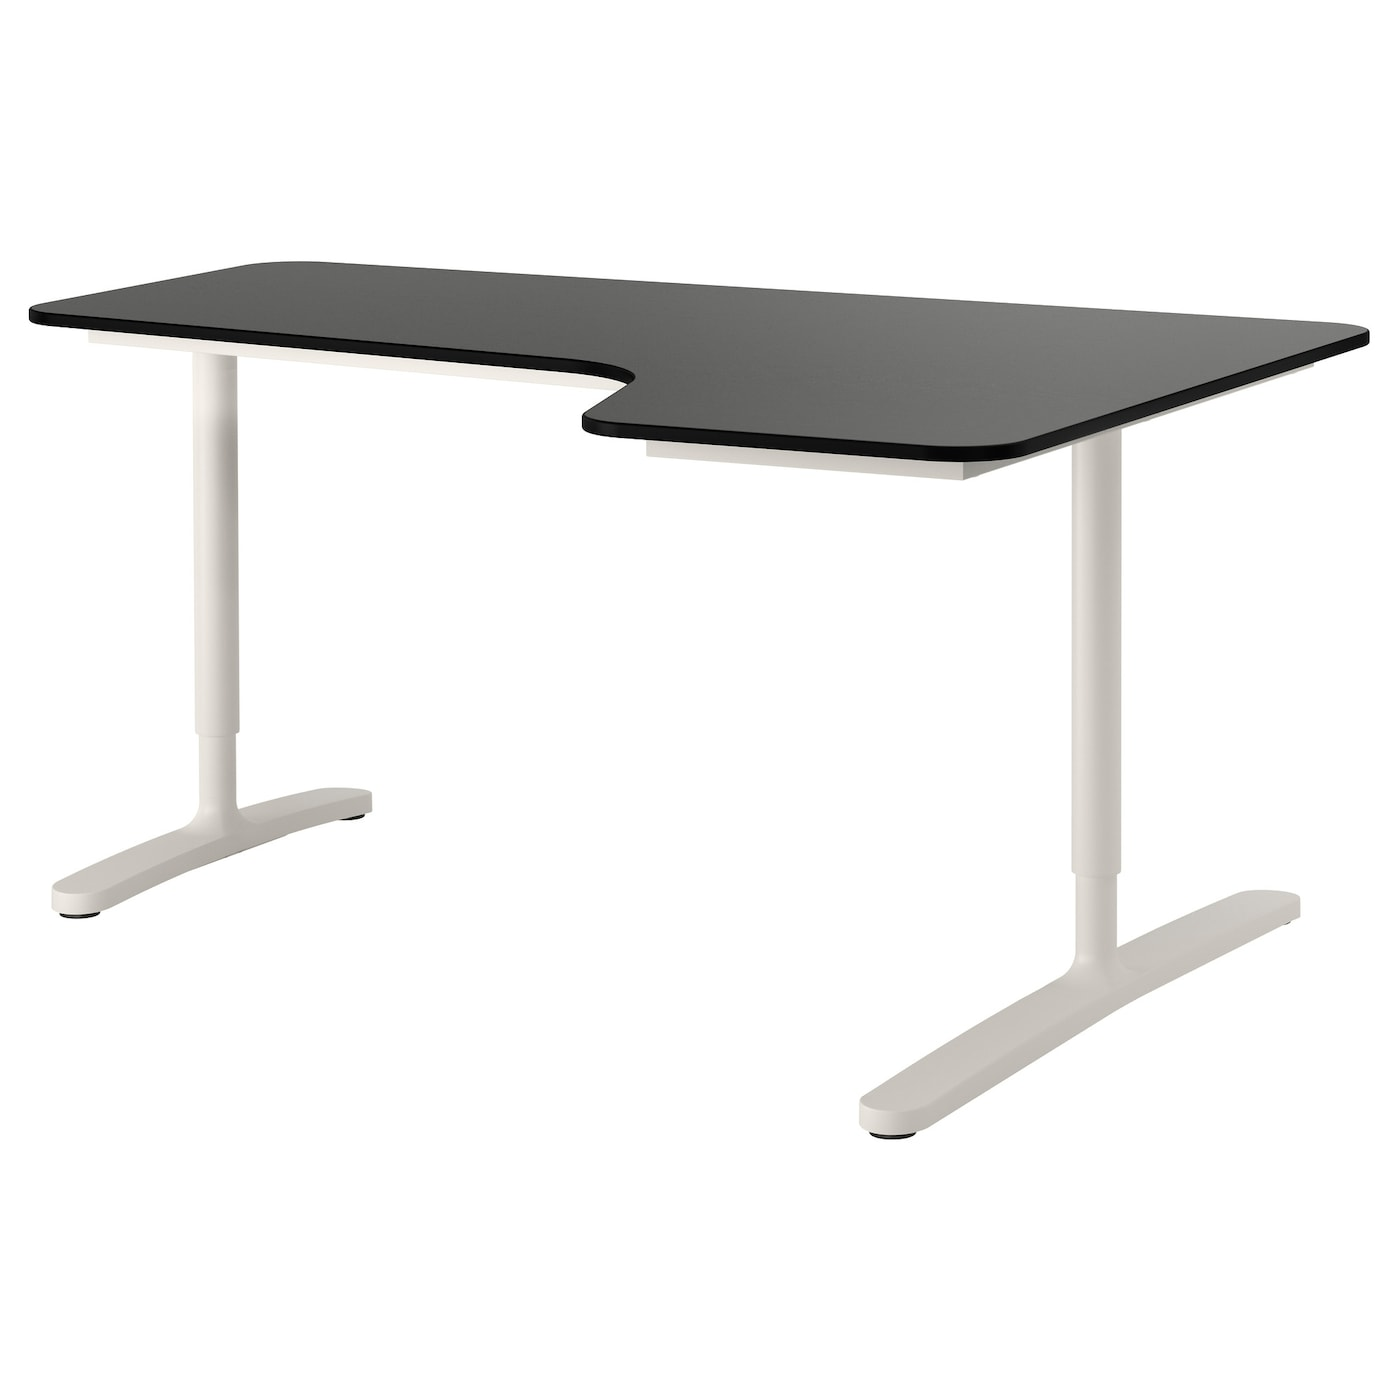 Ikea Bekant Corner Desk Right 10 Year Guarantee Read About The Terms In